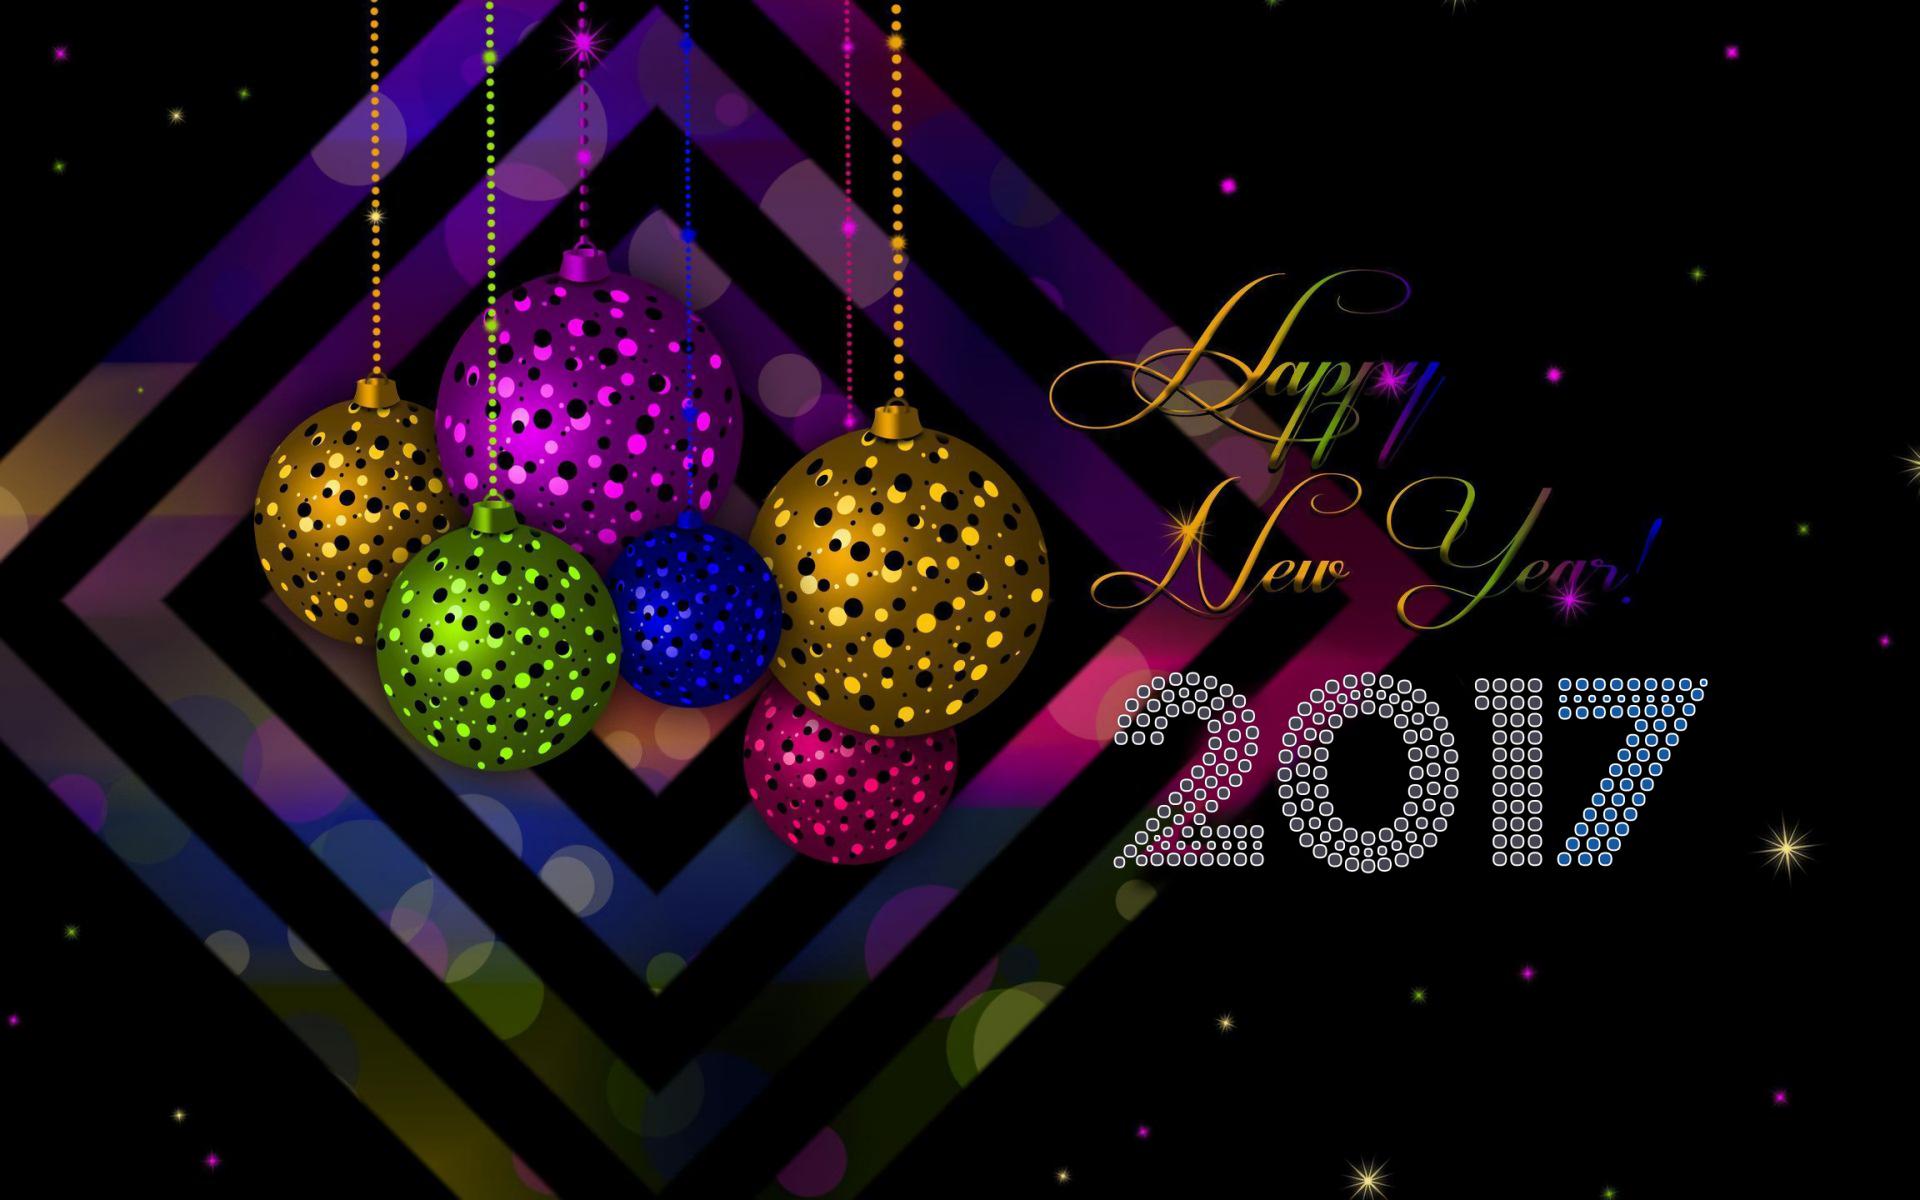 81 Happy New Year HD Wallpapers